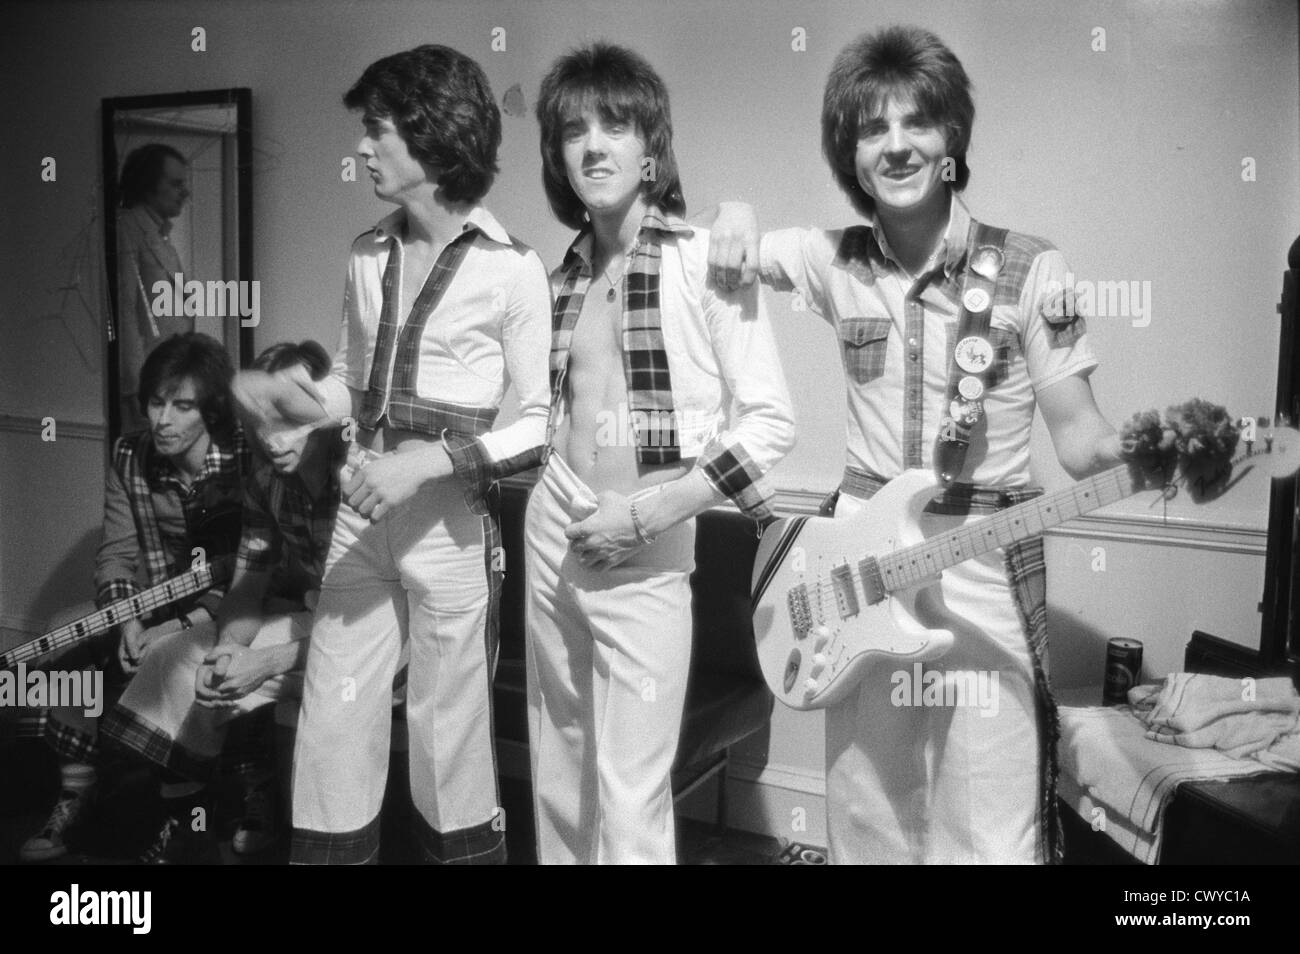 Bay City Rollers pop group boy band Newcastle UK 1970s dressing room after the show.  HOMER SYKES Stock Photo